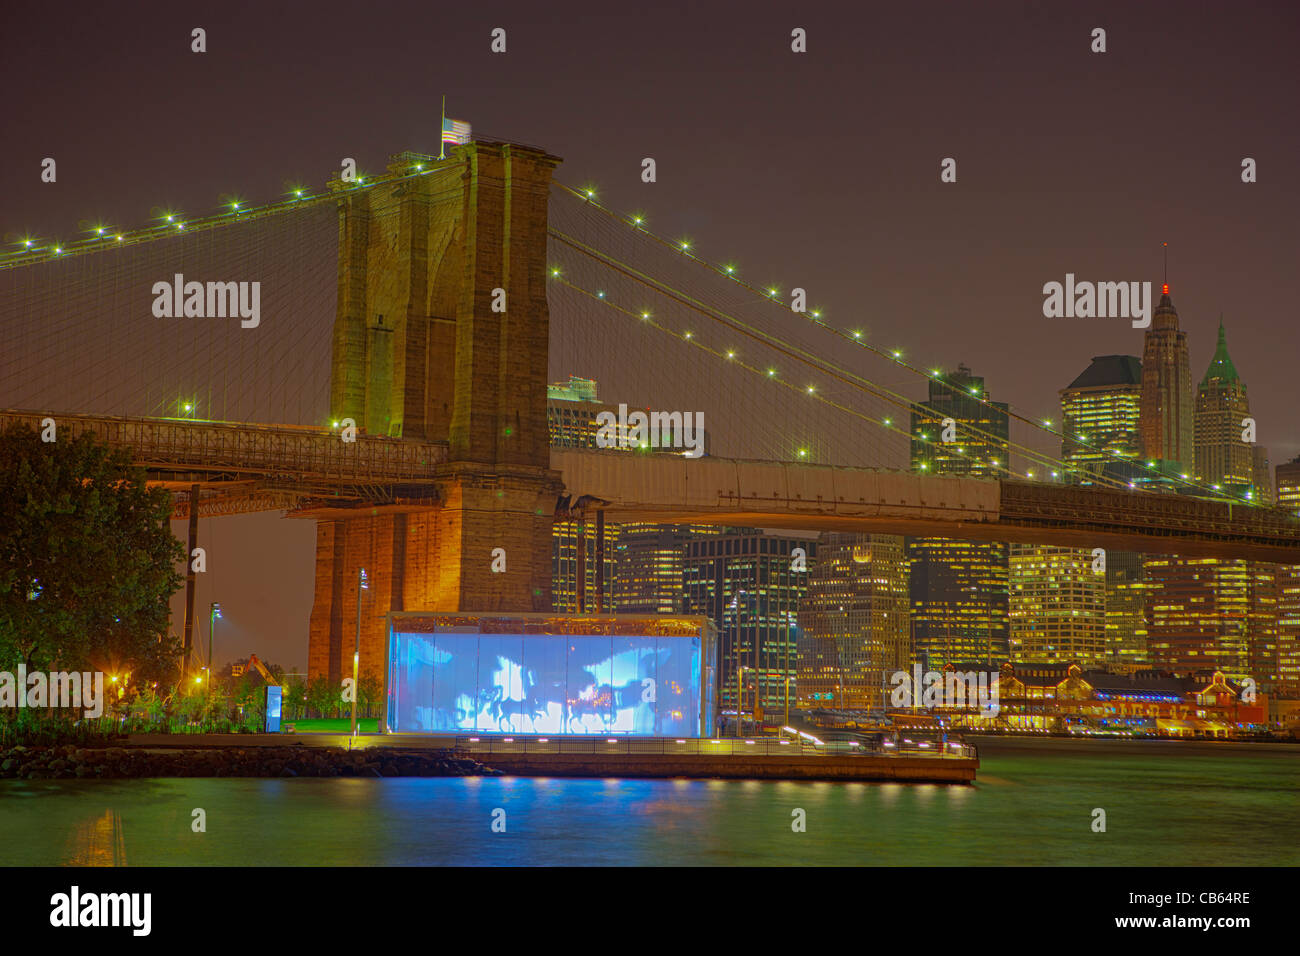 Jane's carousel under the Brooklyn Bridge - Stock Image